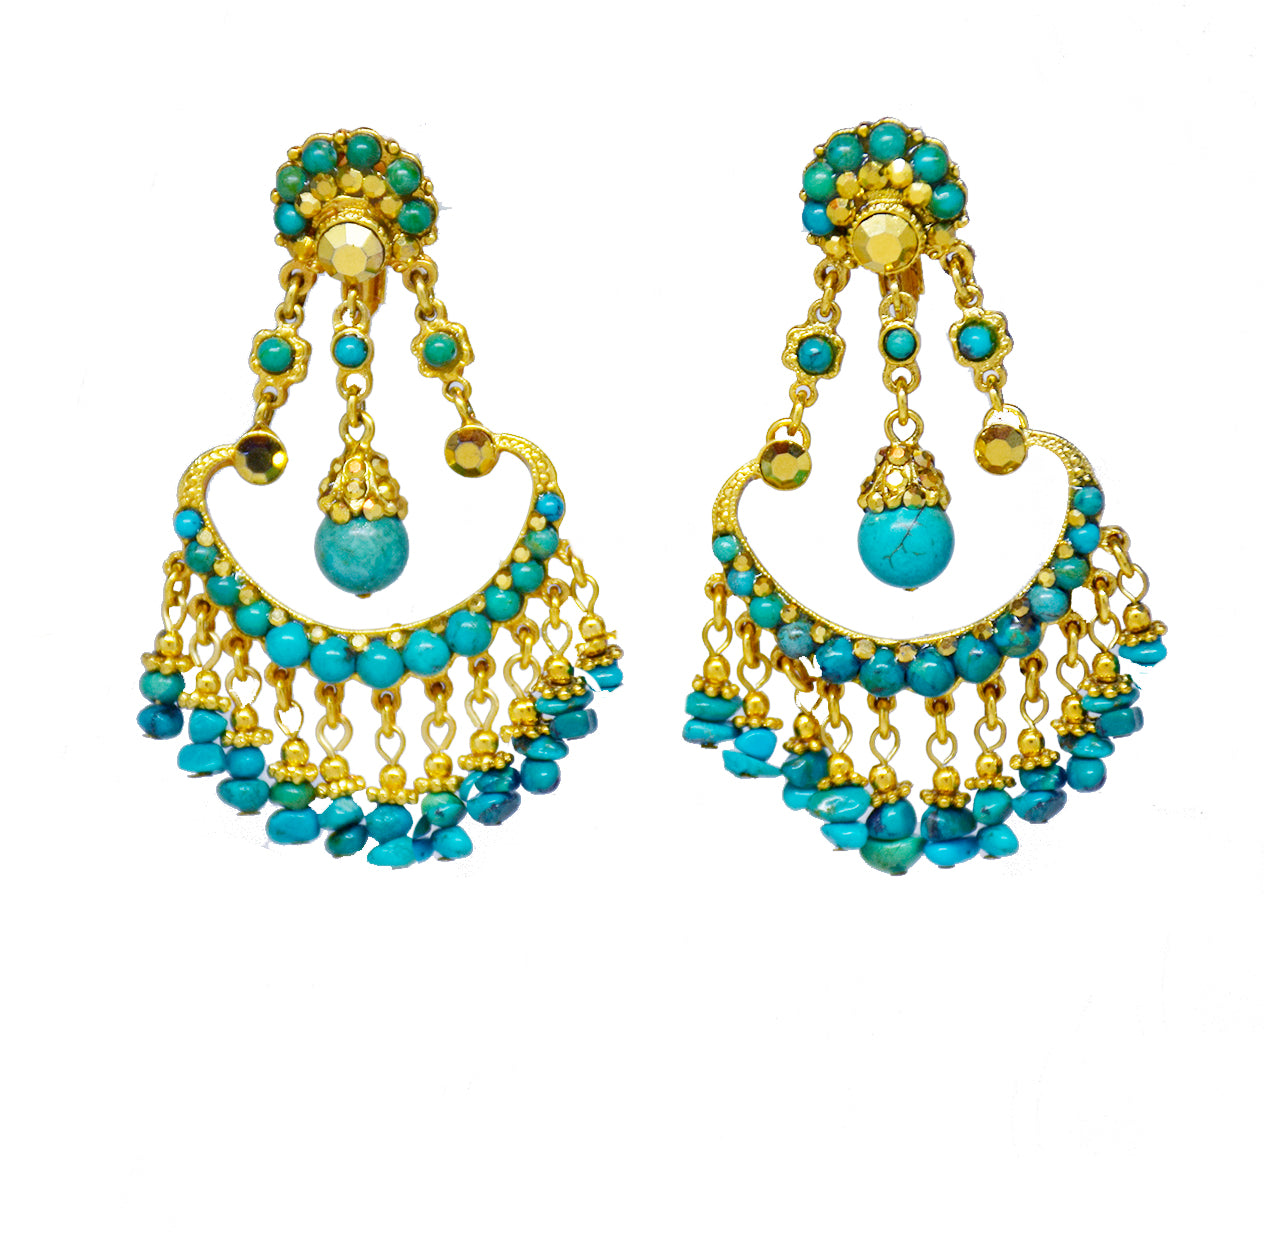 112 Gold chandelier clip earring with turquoise bead drops